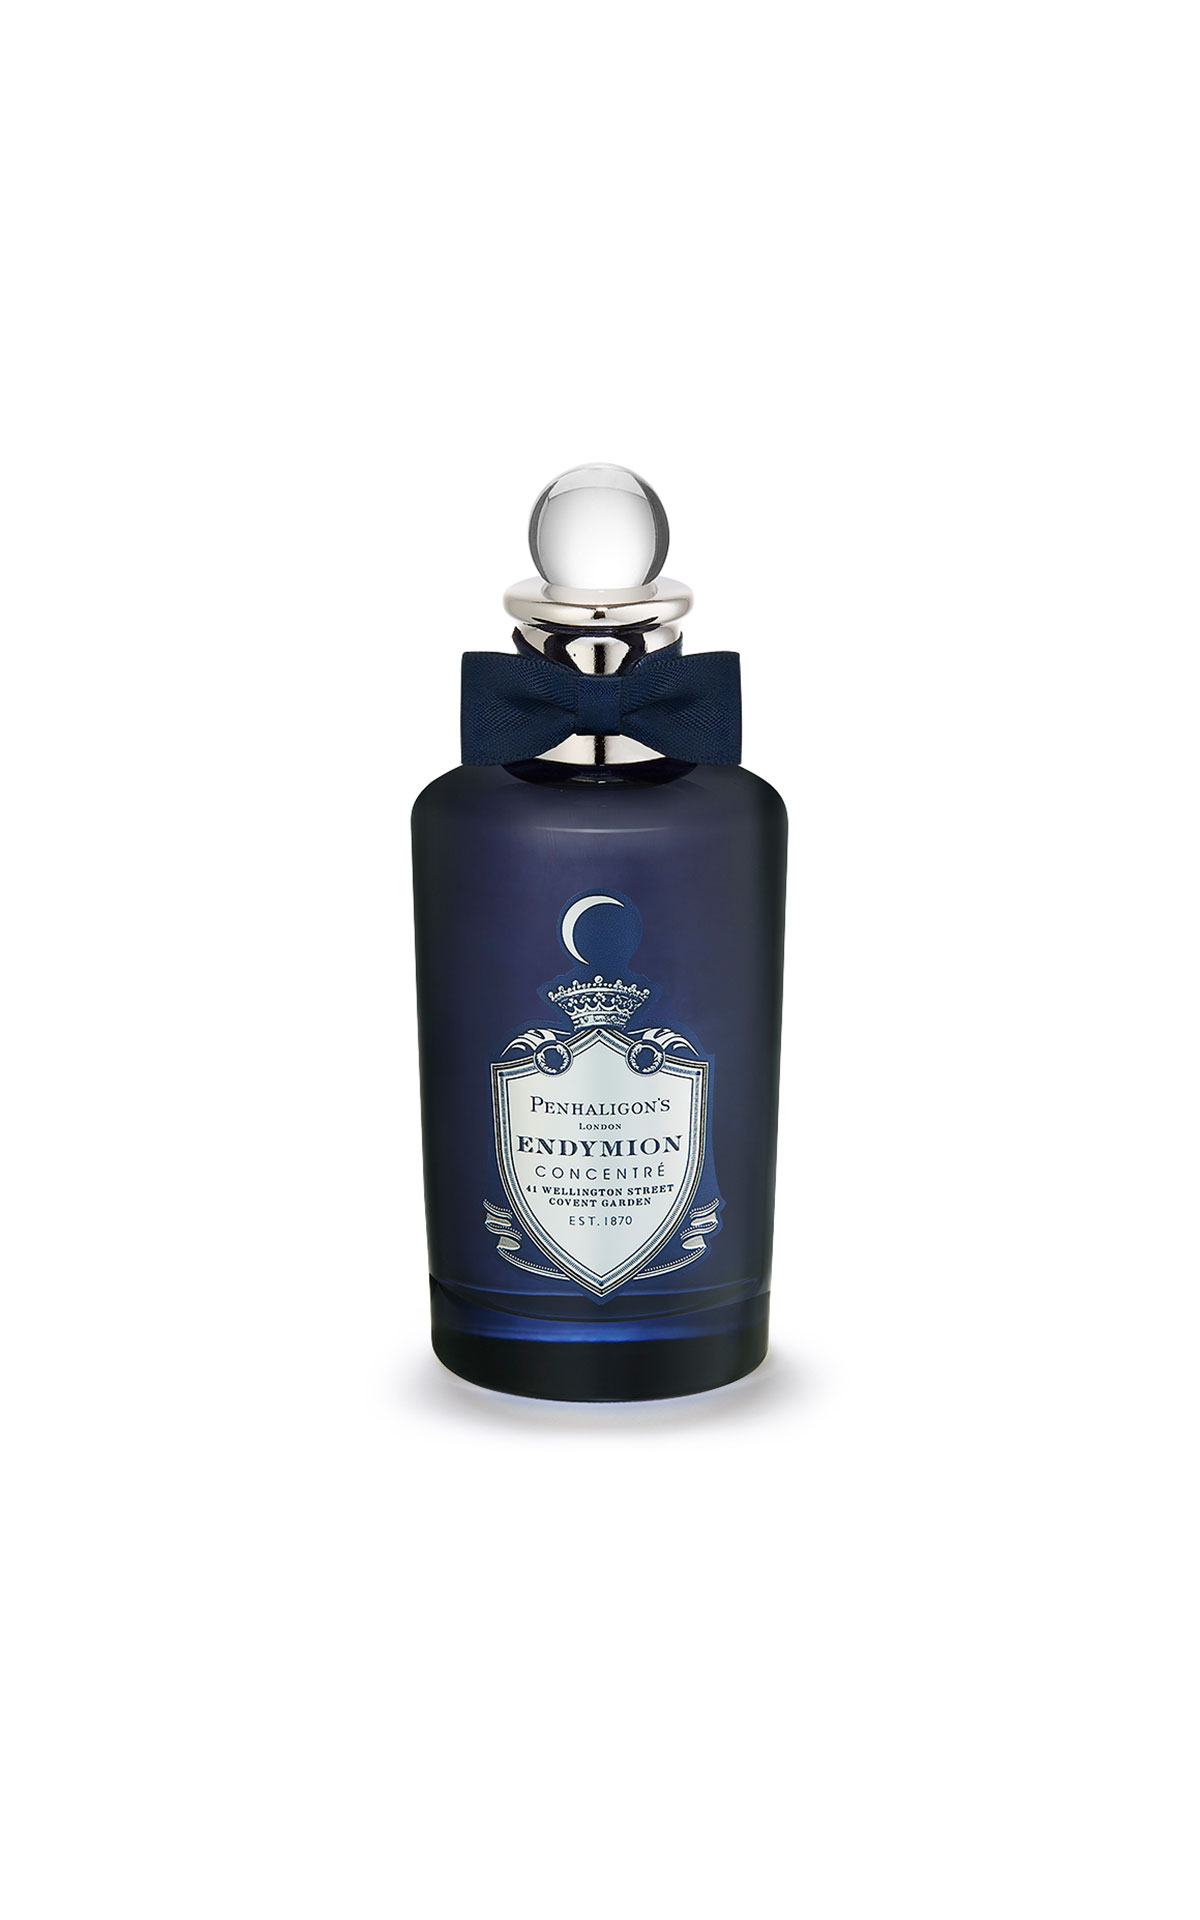 Penhaligon's Endymion Concentre 100ml from Bicester Village